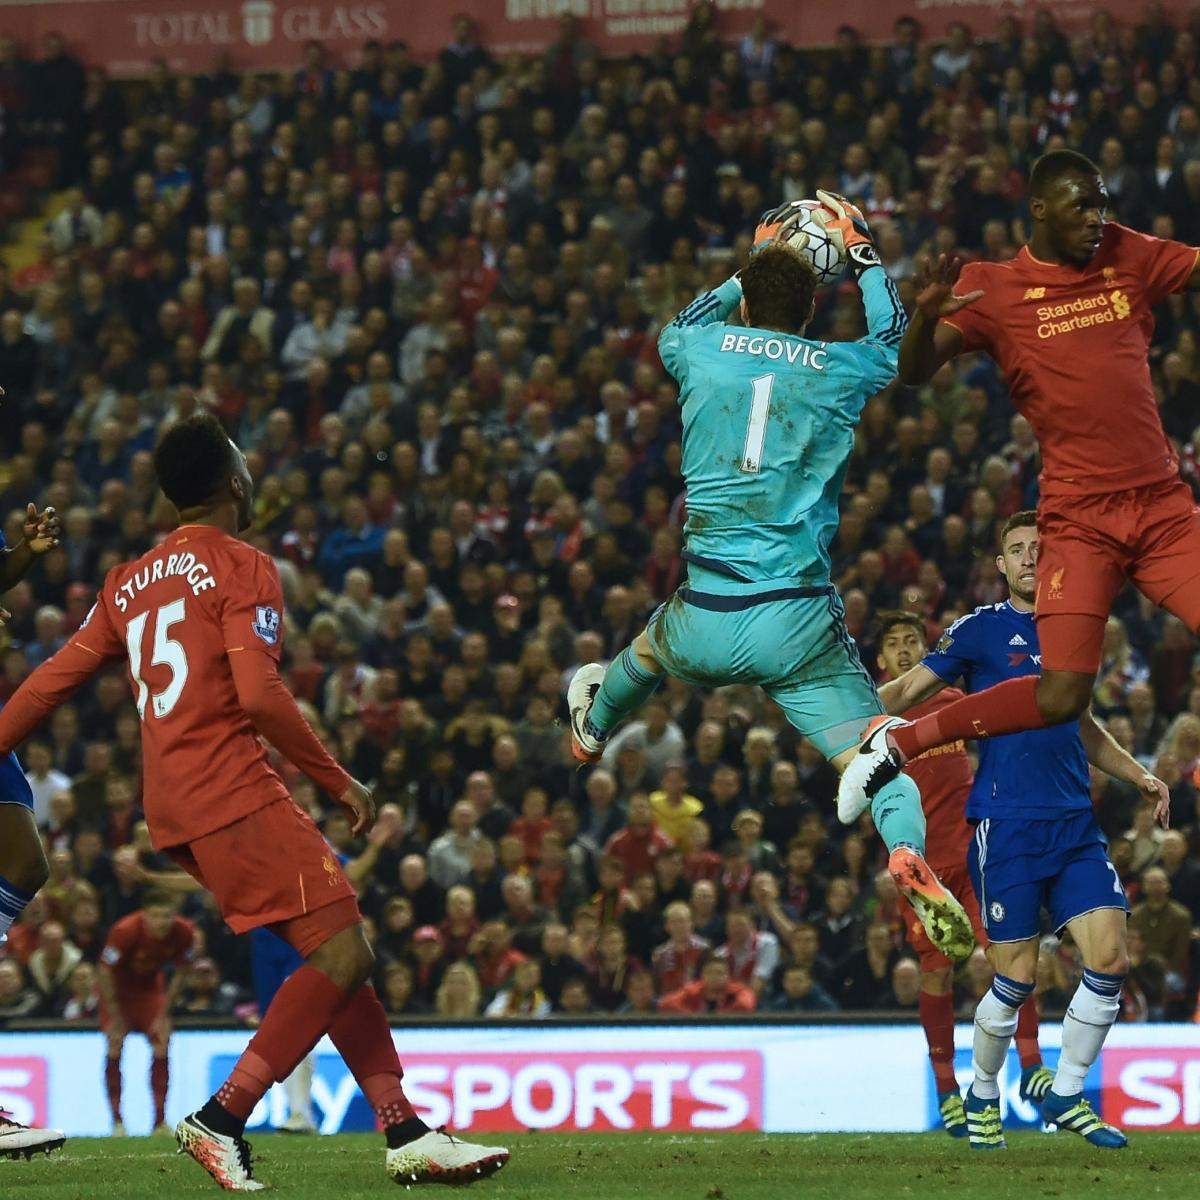 Liverpool Vs Chelsea: Liverpool Vs. Chelsea: Score, Reaction From 2016 Premier